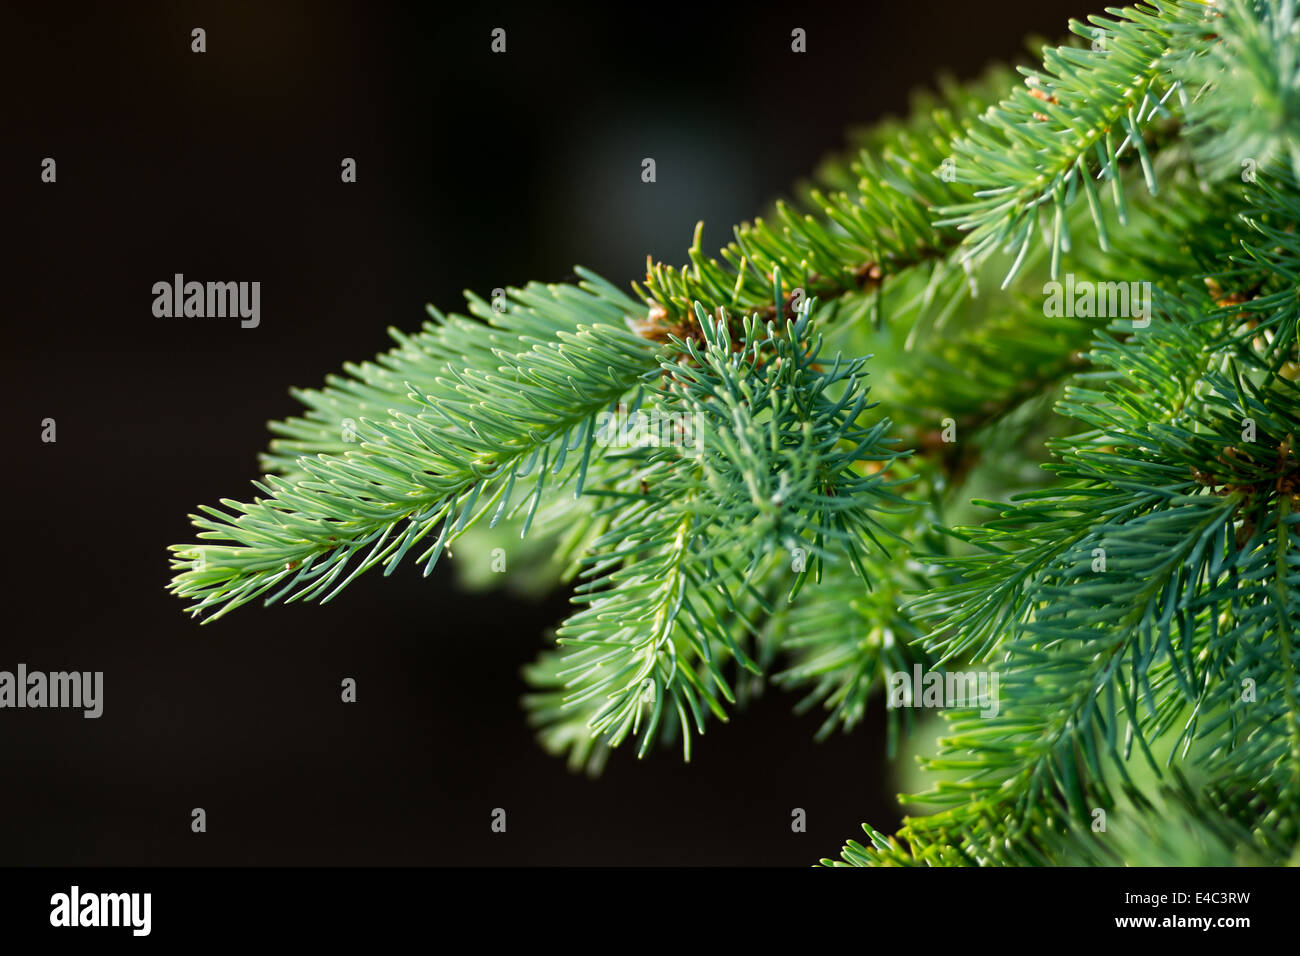 Branch of abies - Stock Image